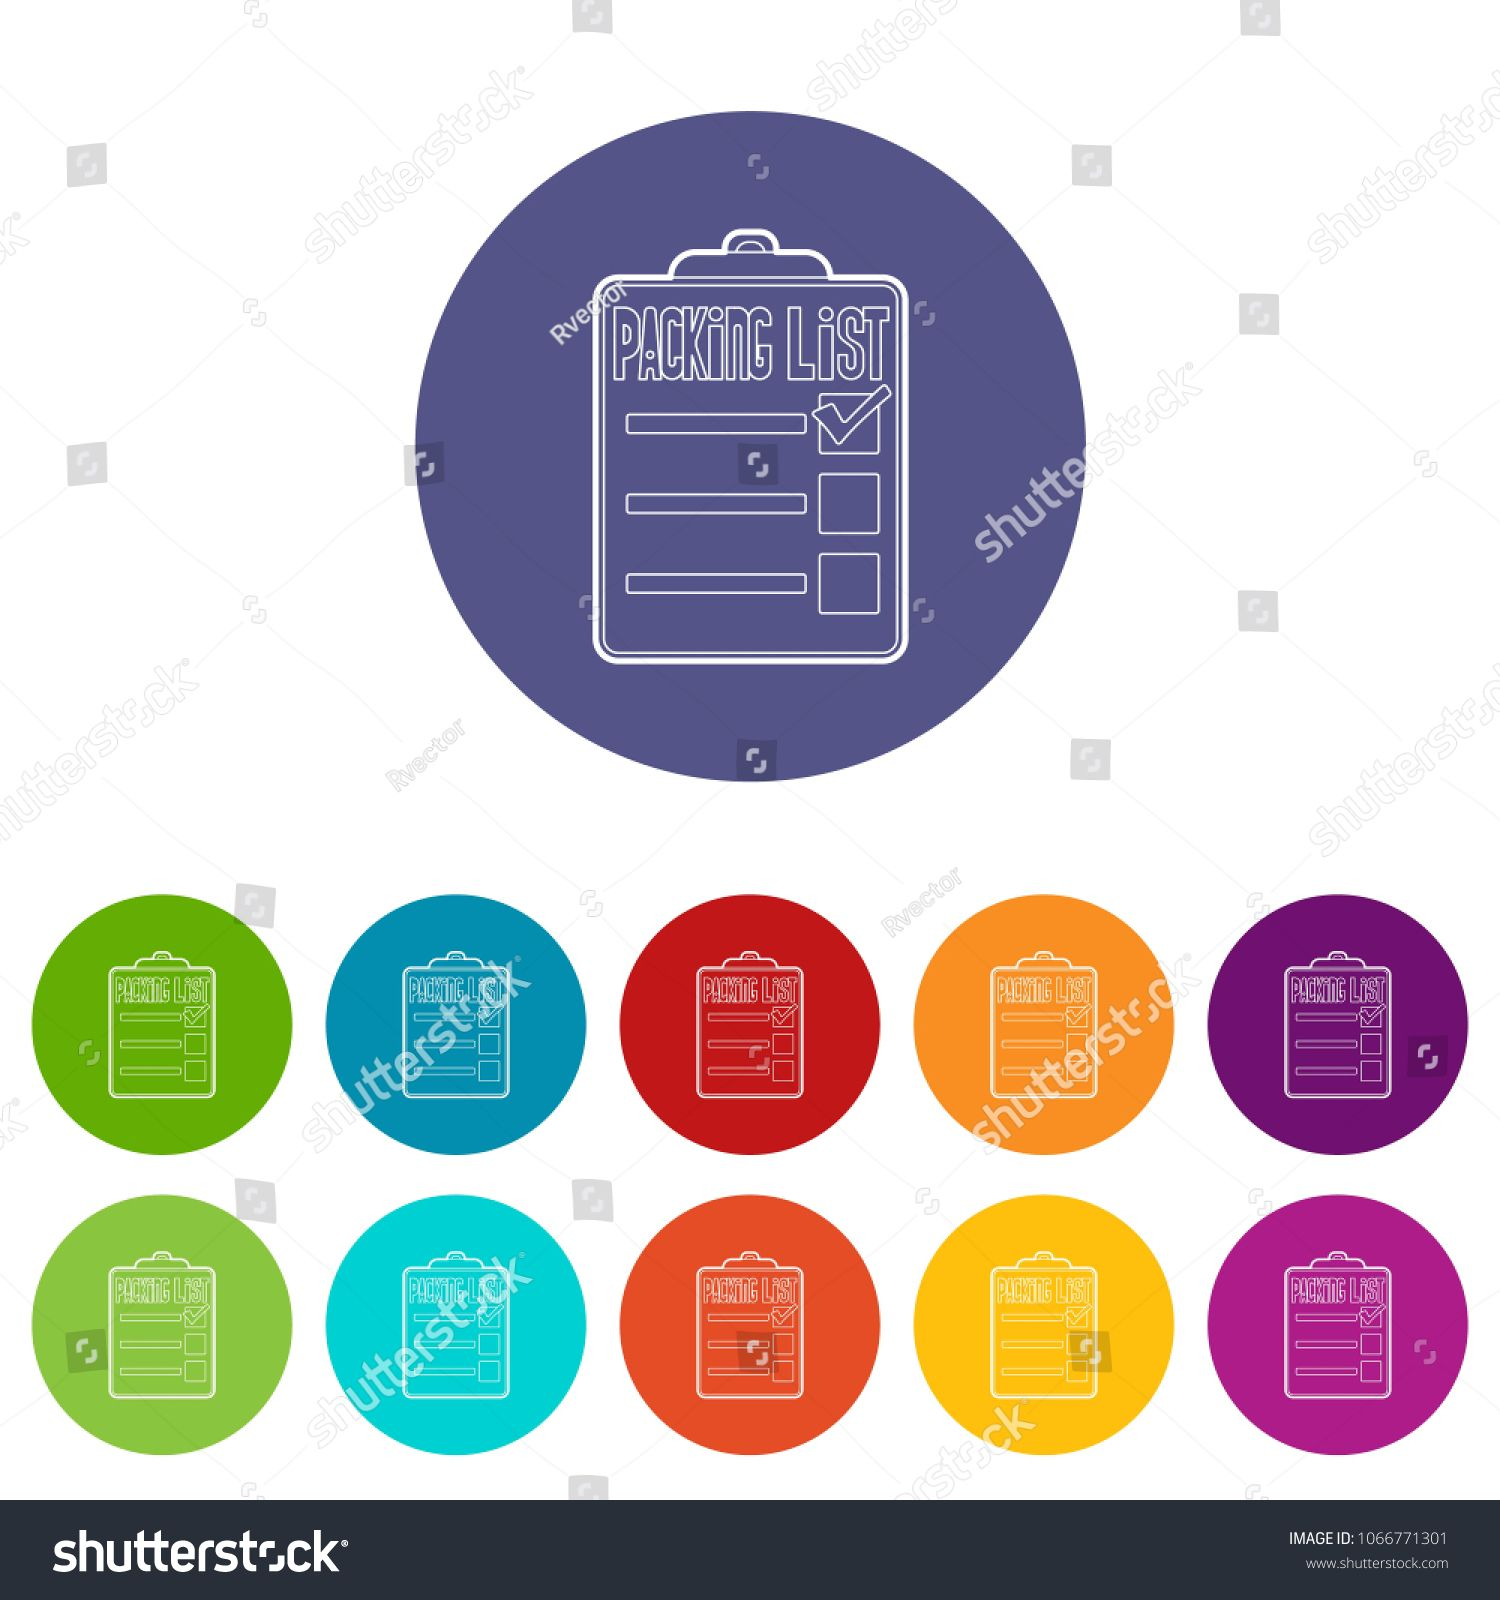 Packing List Icons Color Set Vector For Any Web Design On White Background Ad Paid Color Set Icons Packing In 2020 Color Set Packing List Web Design